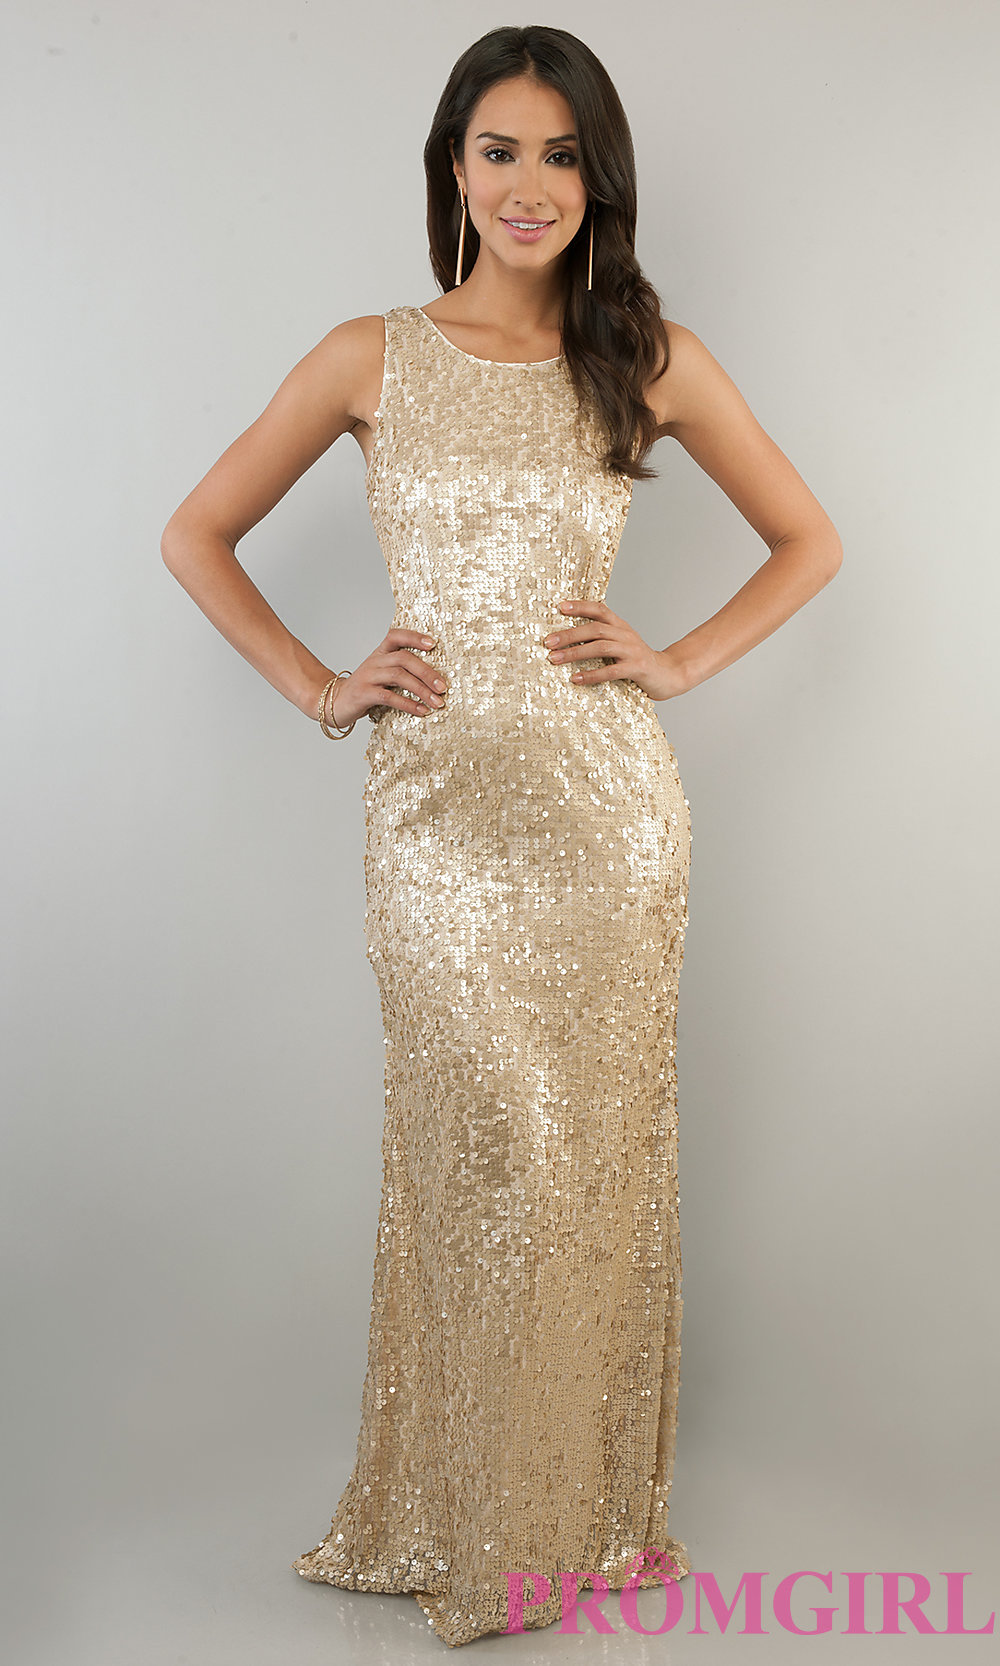 Metallic Dress Gold Clothes Review Always Fashion